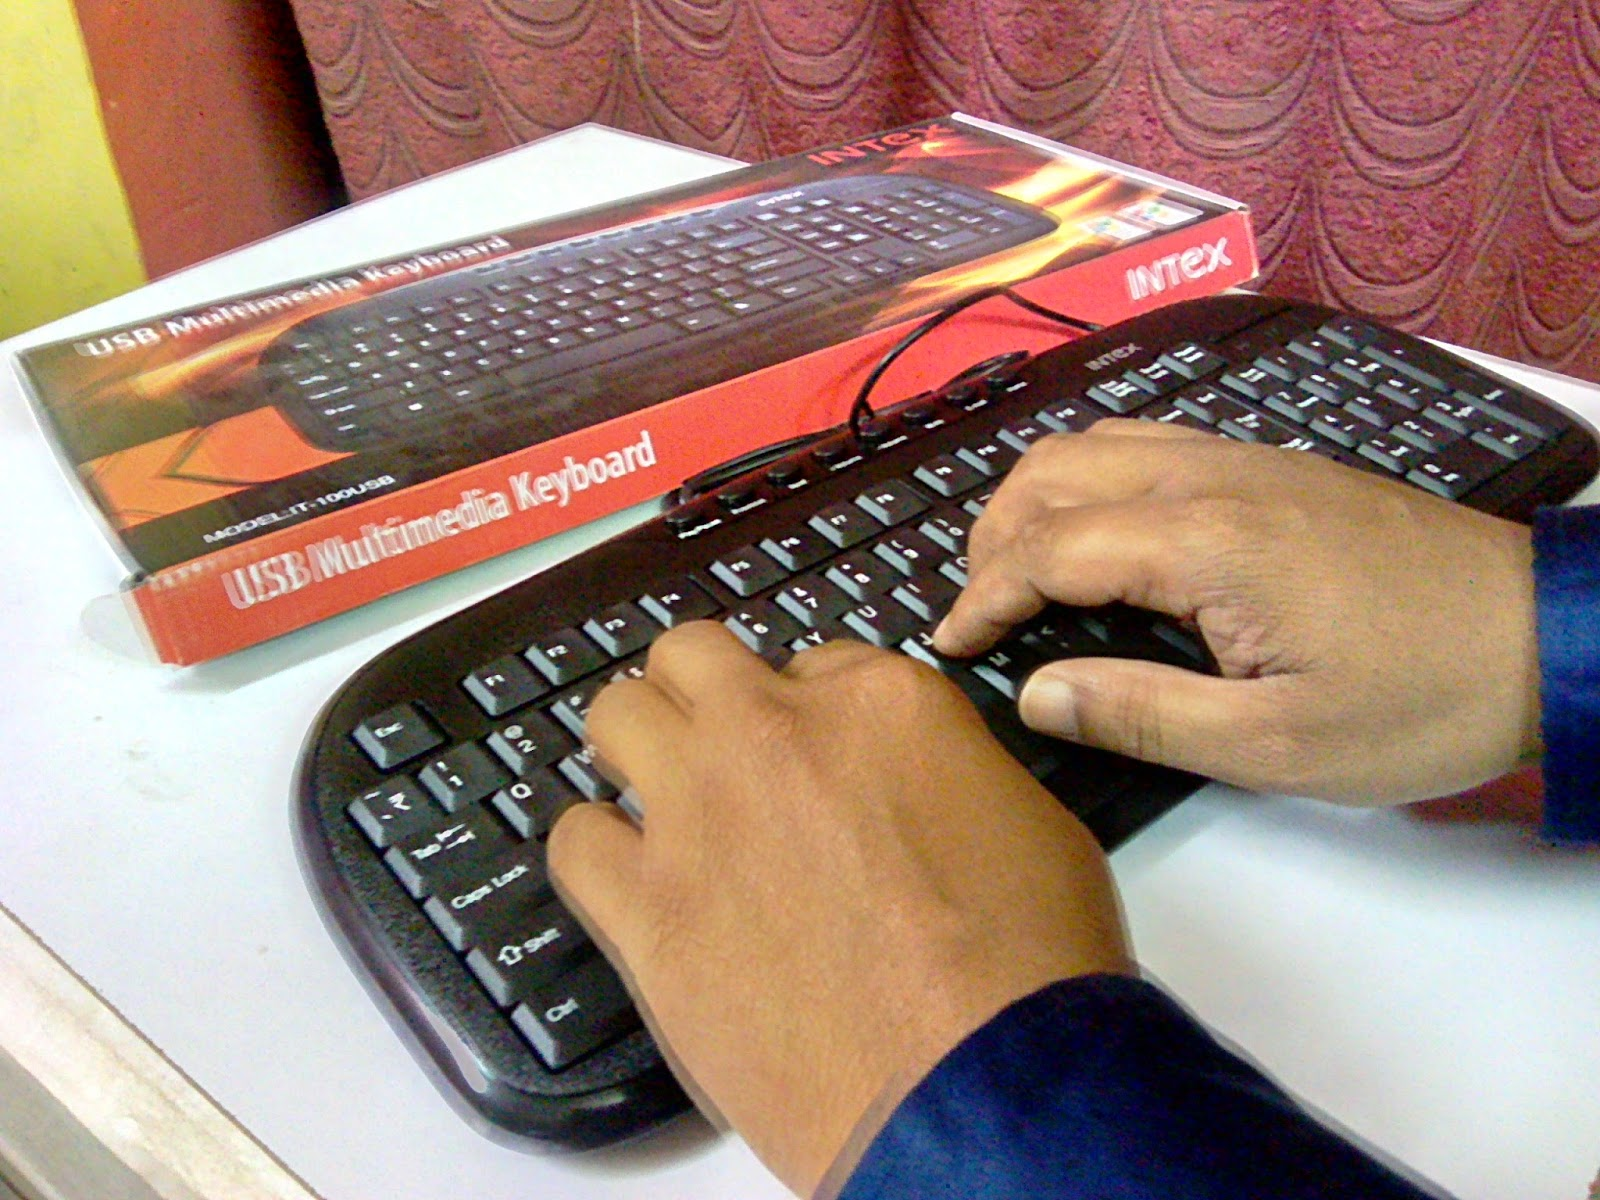 Intex Multimedia Keyboard (IT-100 USB) Price & Testing